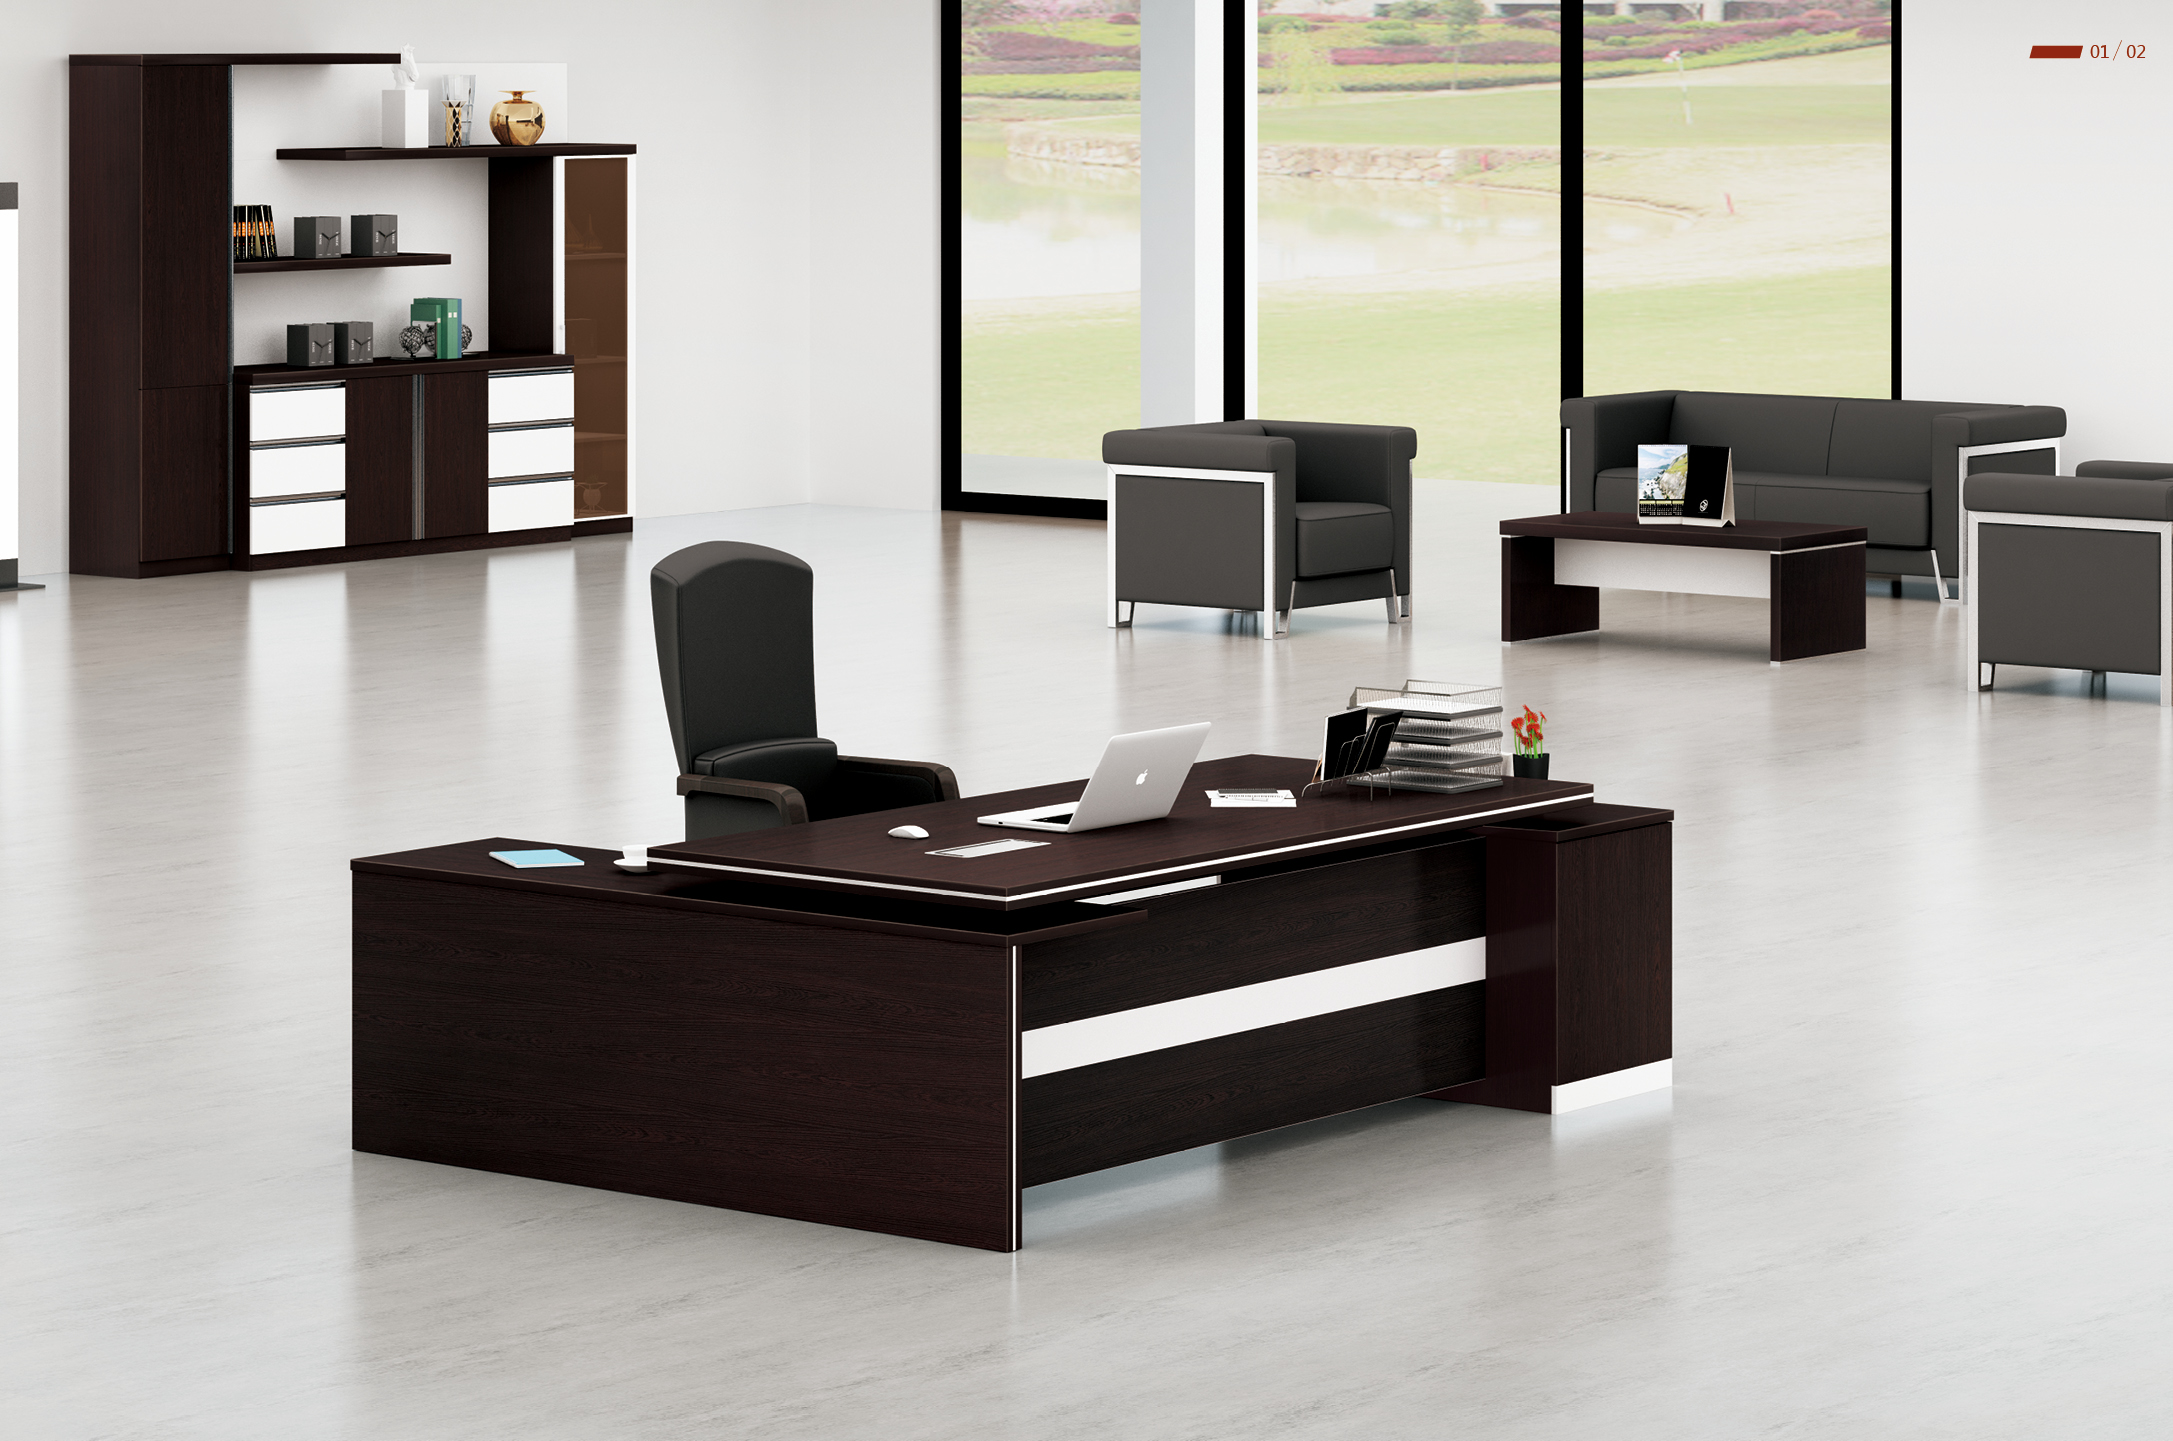 Fsc forest certified approved by sgs 2016 new fashion for Office furniture design